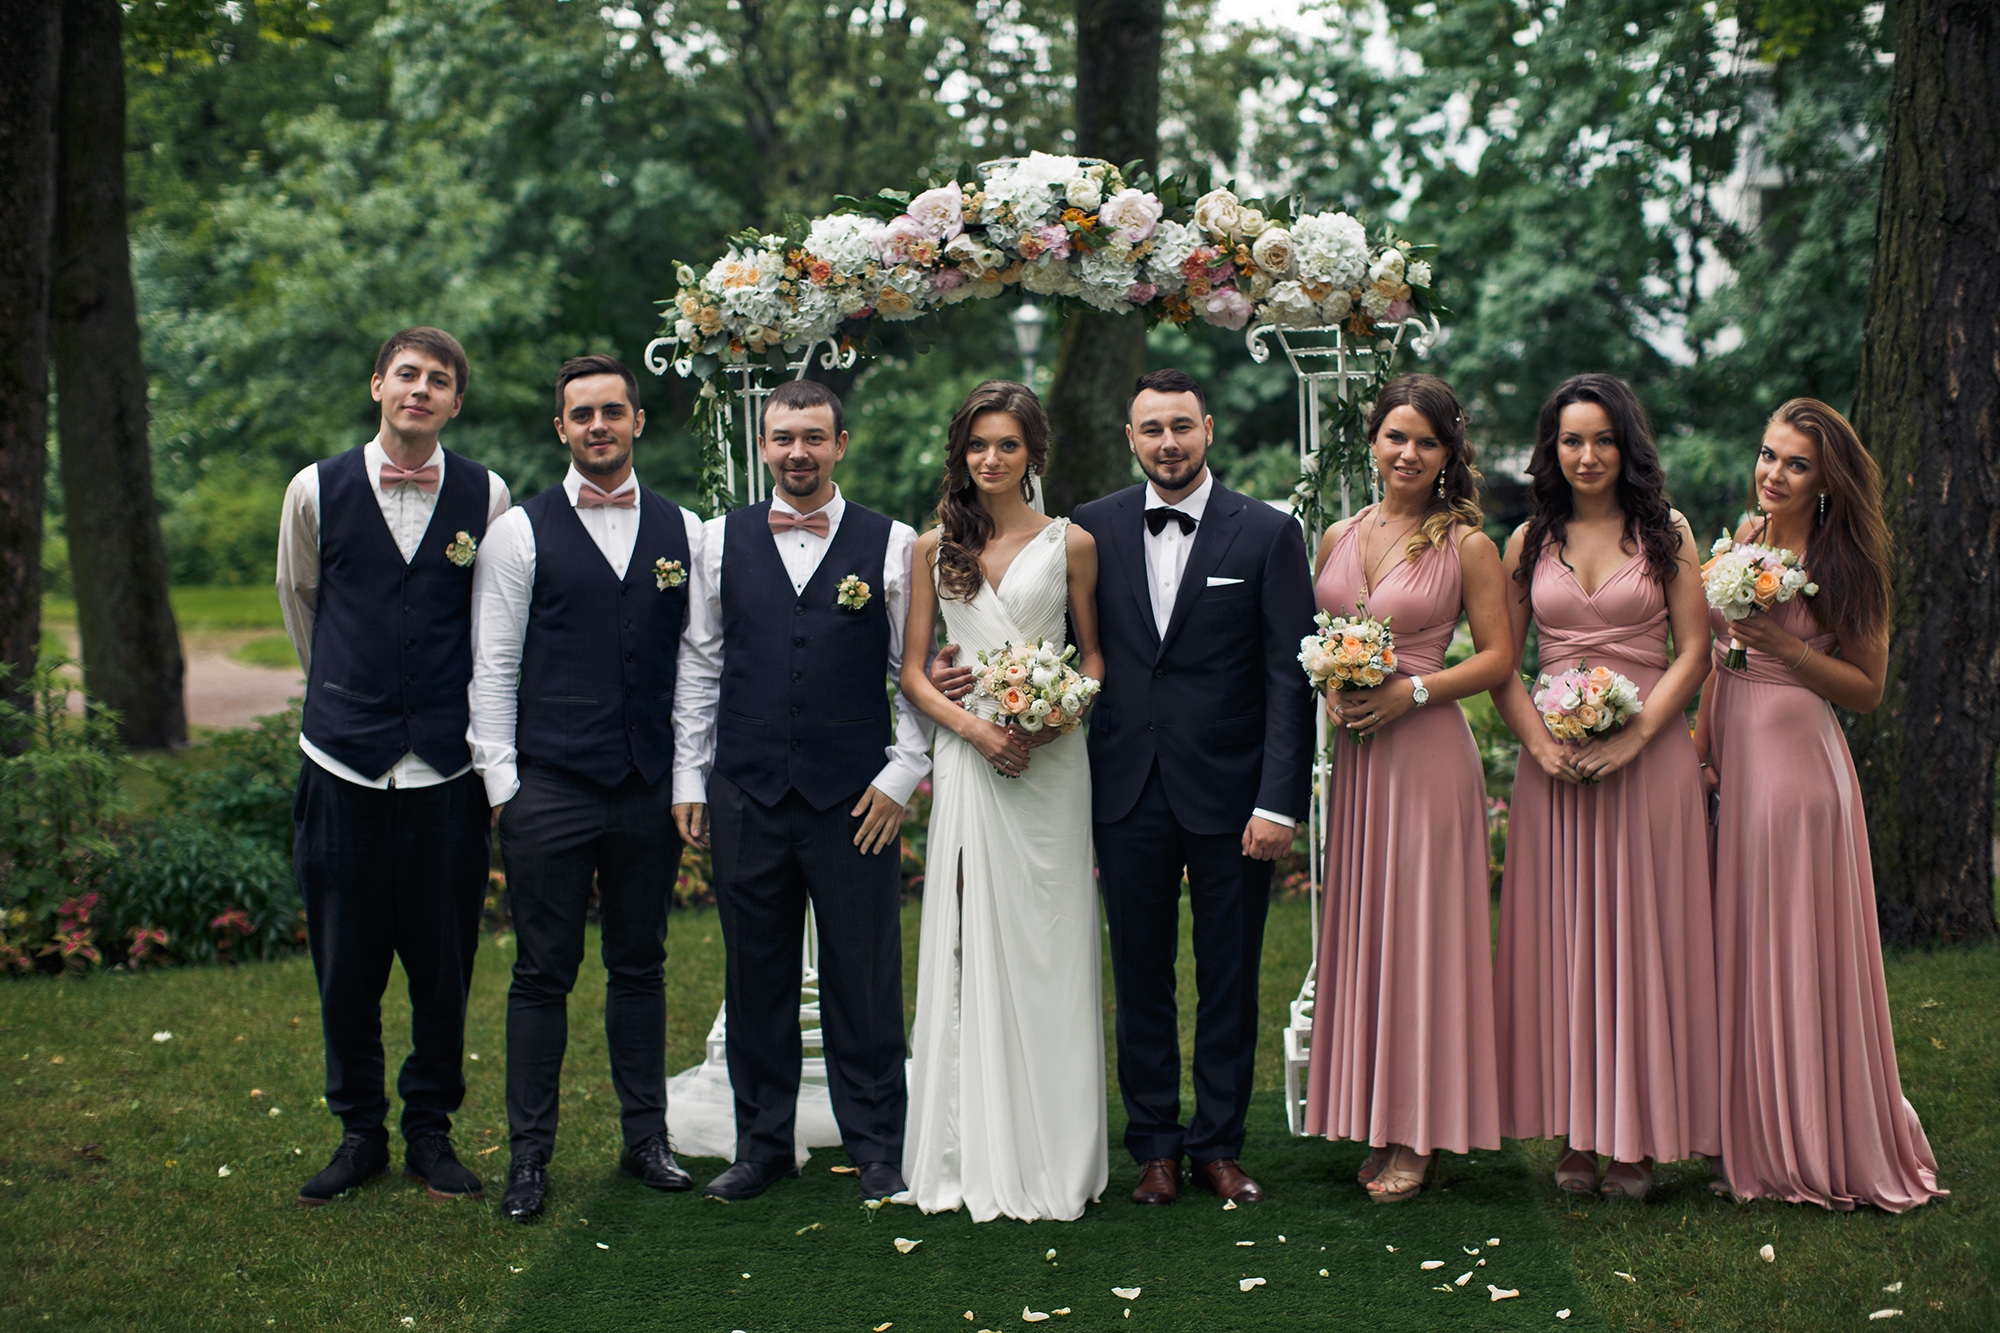 wedding party photography tips